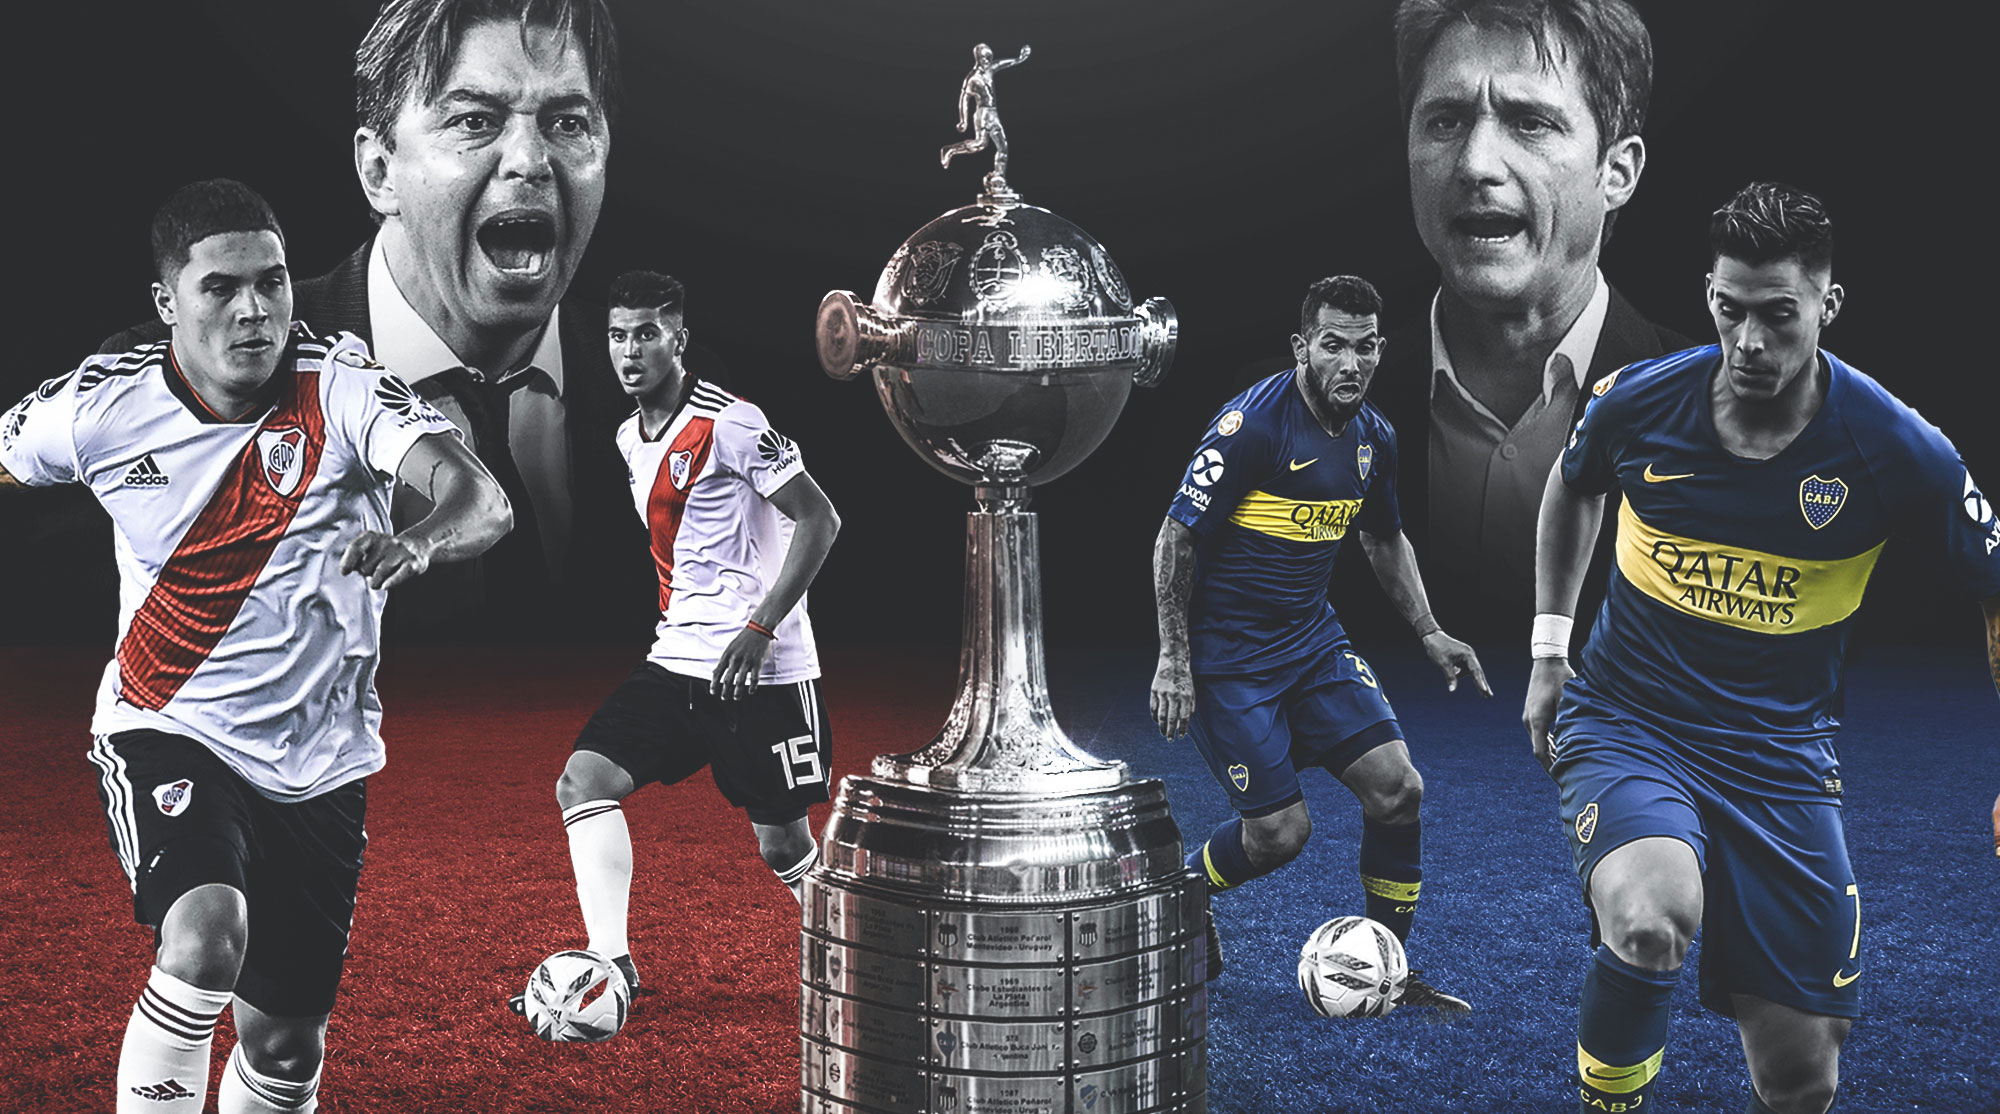 Boca Juniors will meet River Plate in the Copa Libertadores final